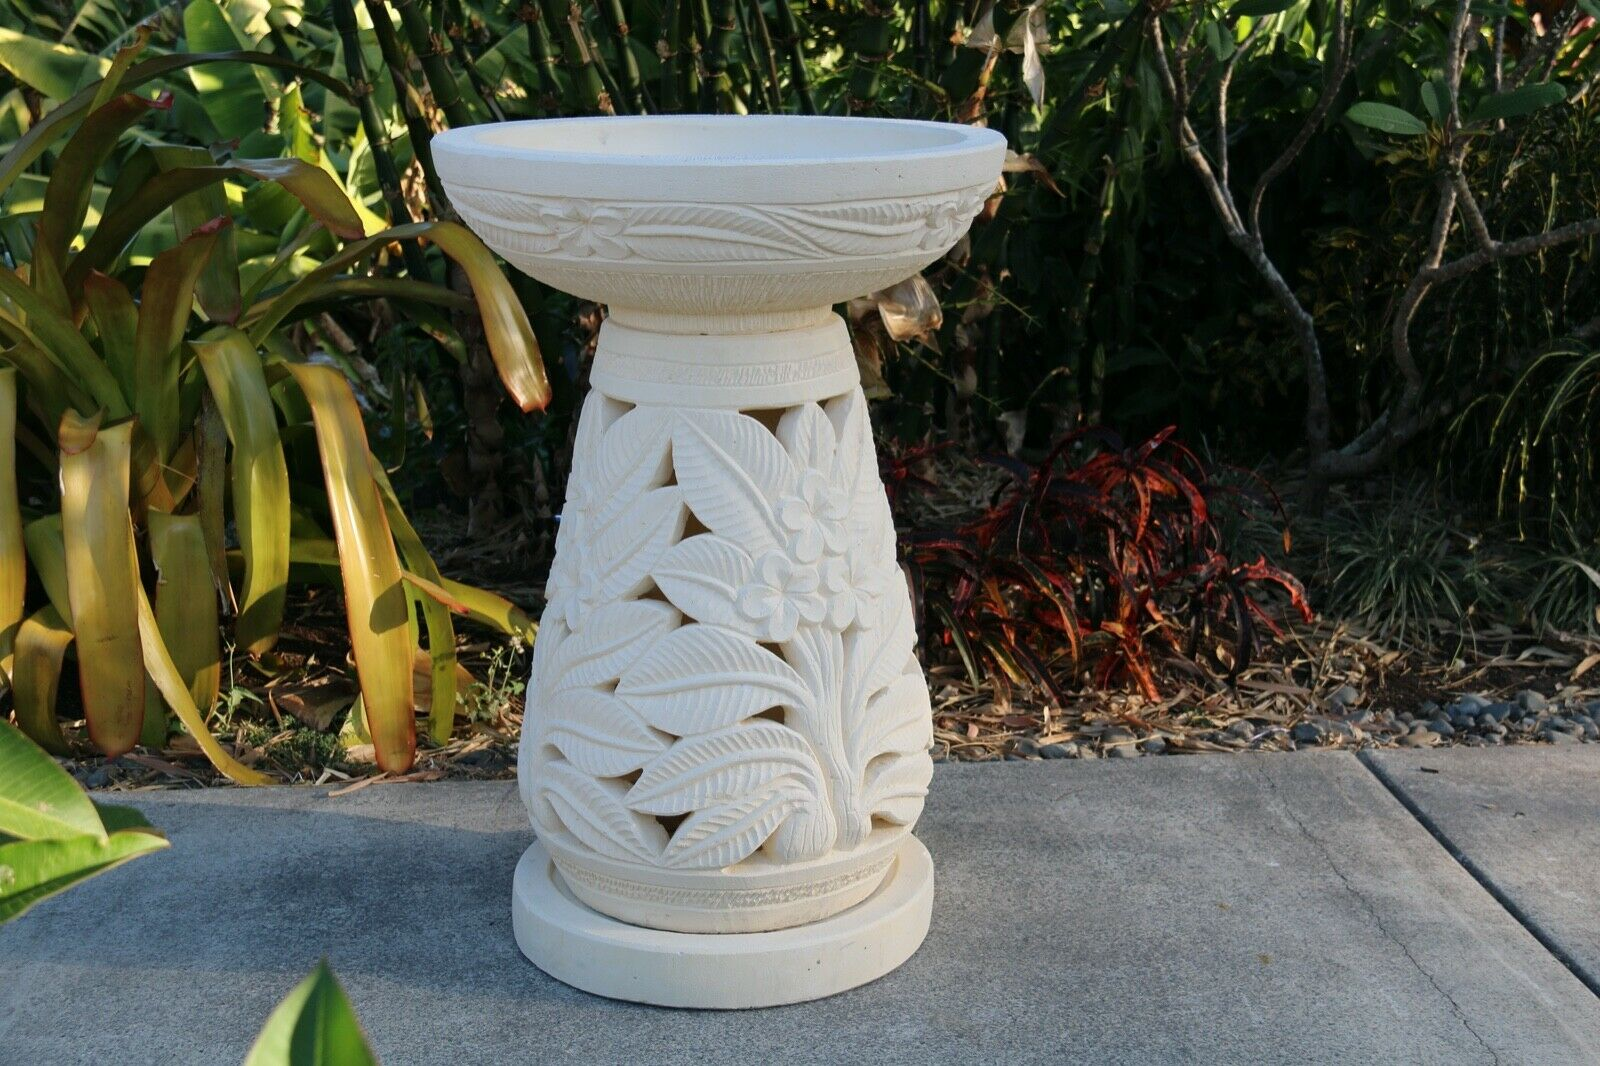 NEW Balinese Frangipani Hand Crafted Bird Bath - Bali Garden Art  Bali Bird Bath